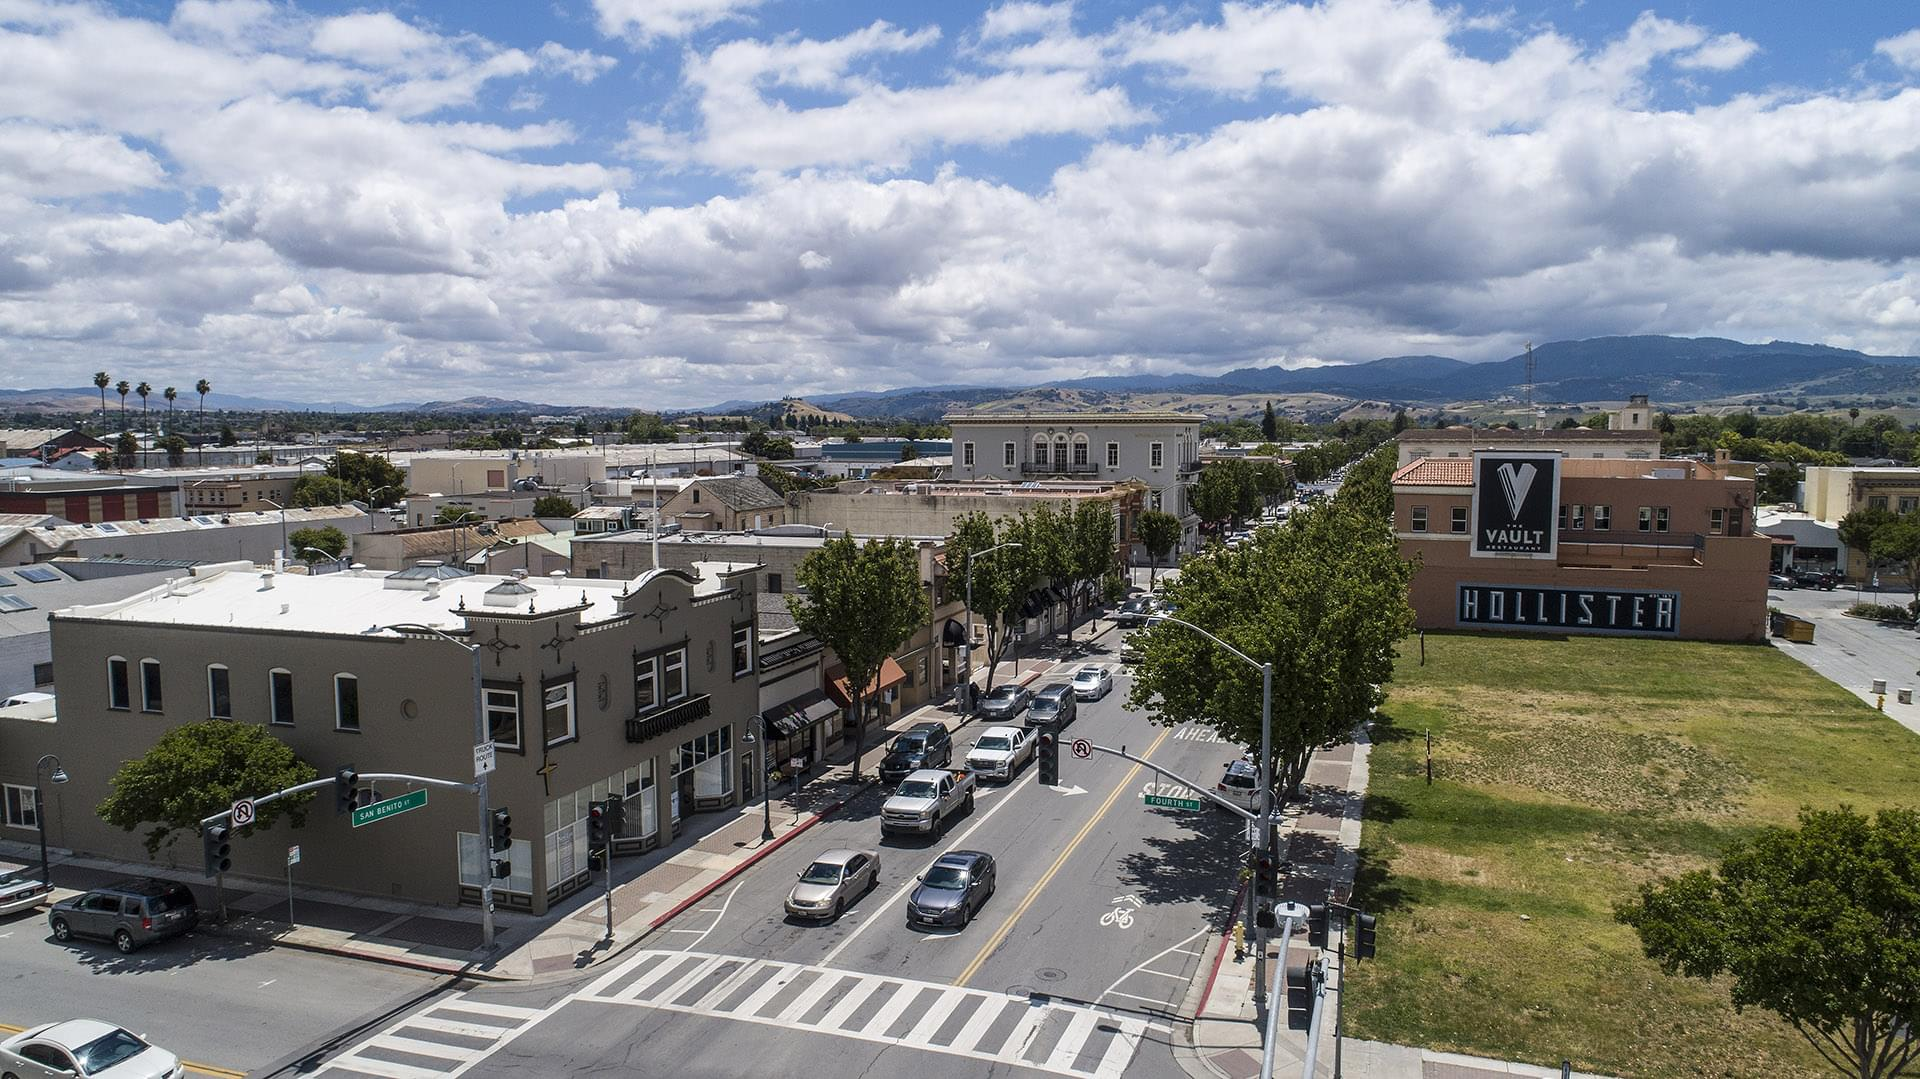 Downtown Hollister